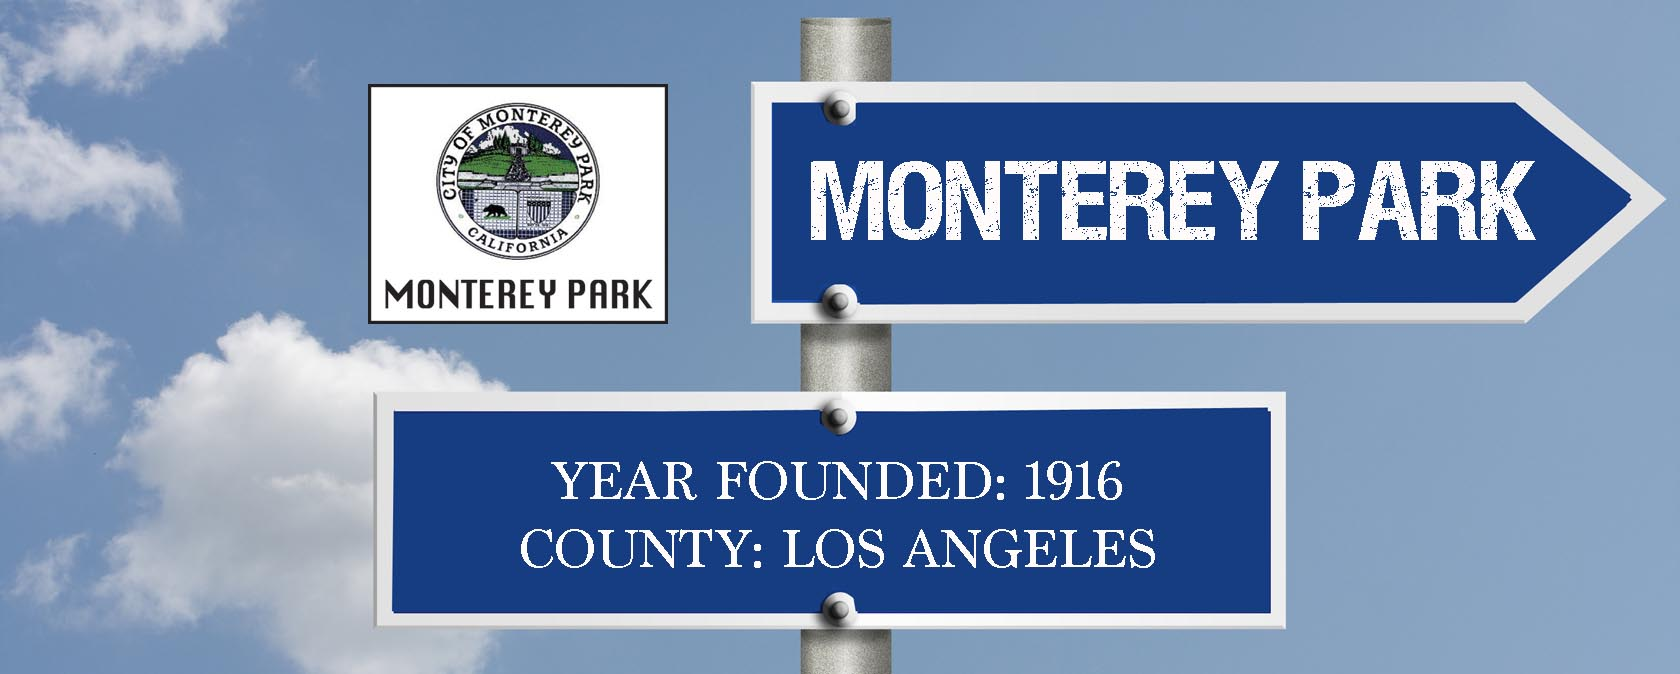 city sign-MONTEREY PARK